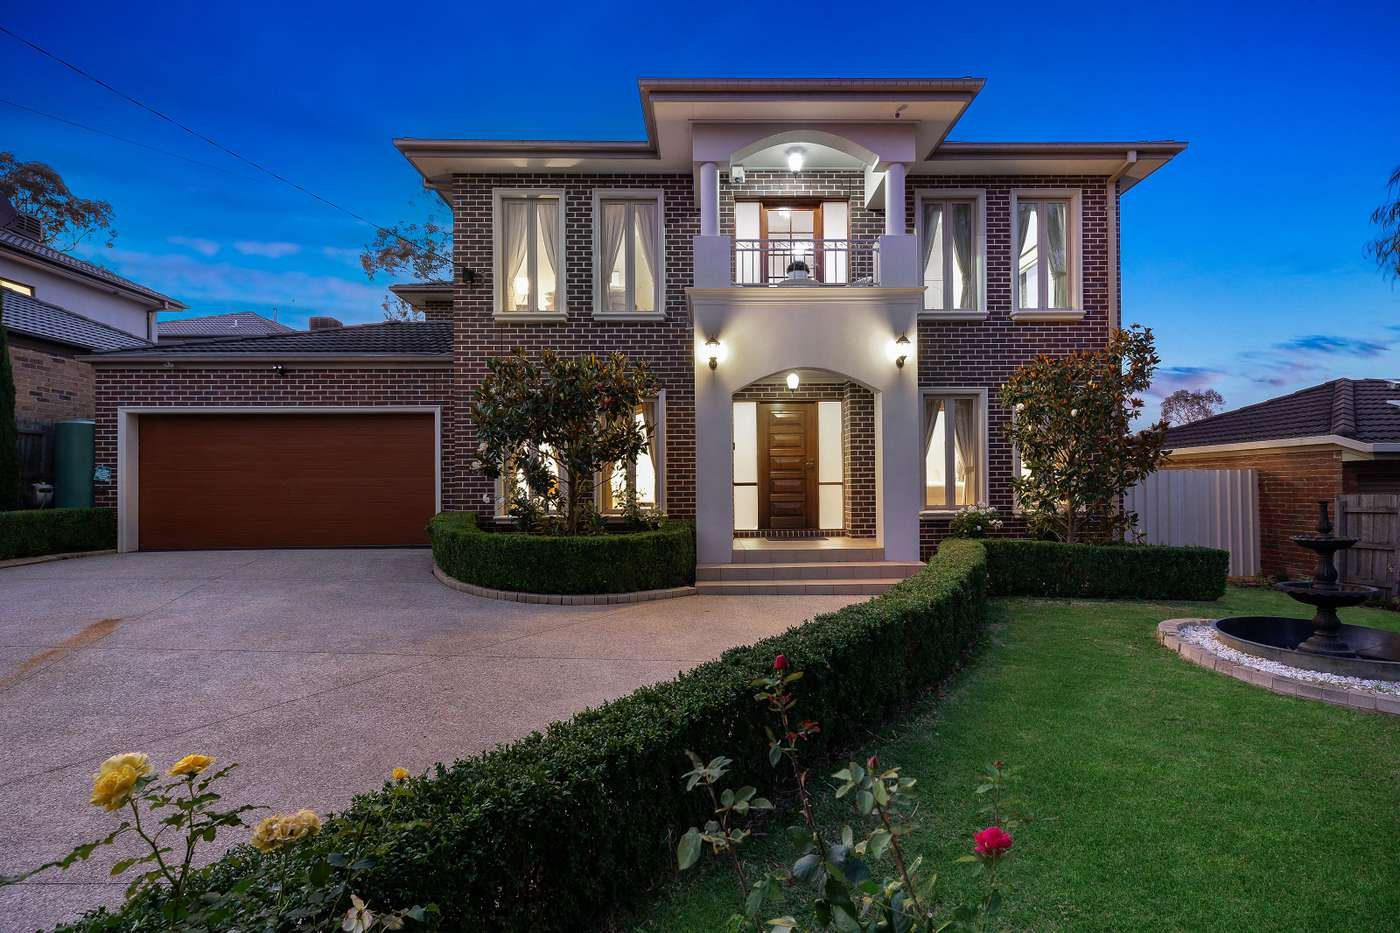 Main view of Homely house listing, 11 Hammence Street, Glen Waverley, VIC 3150